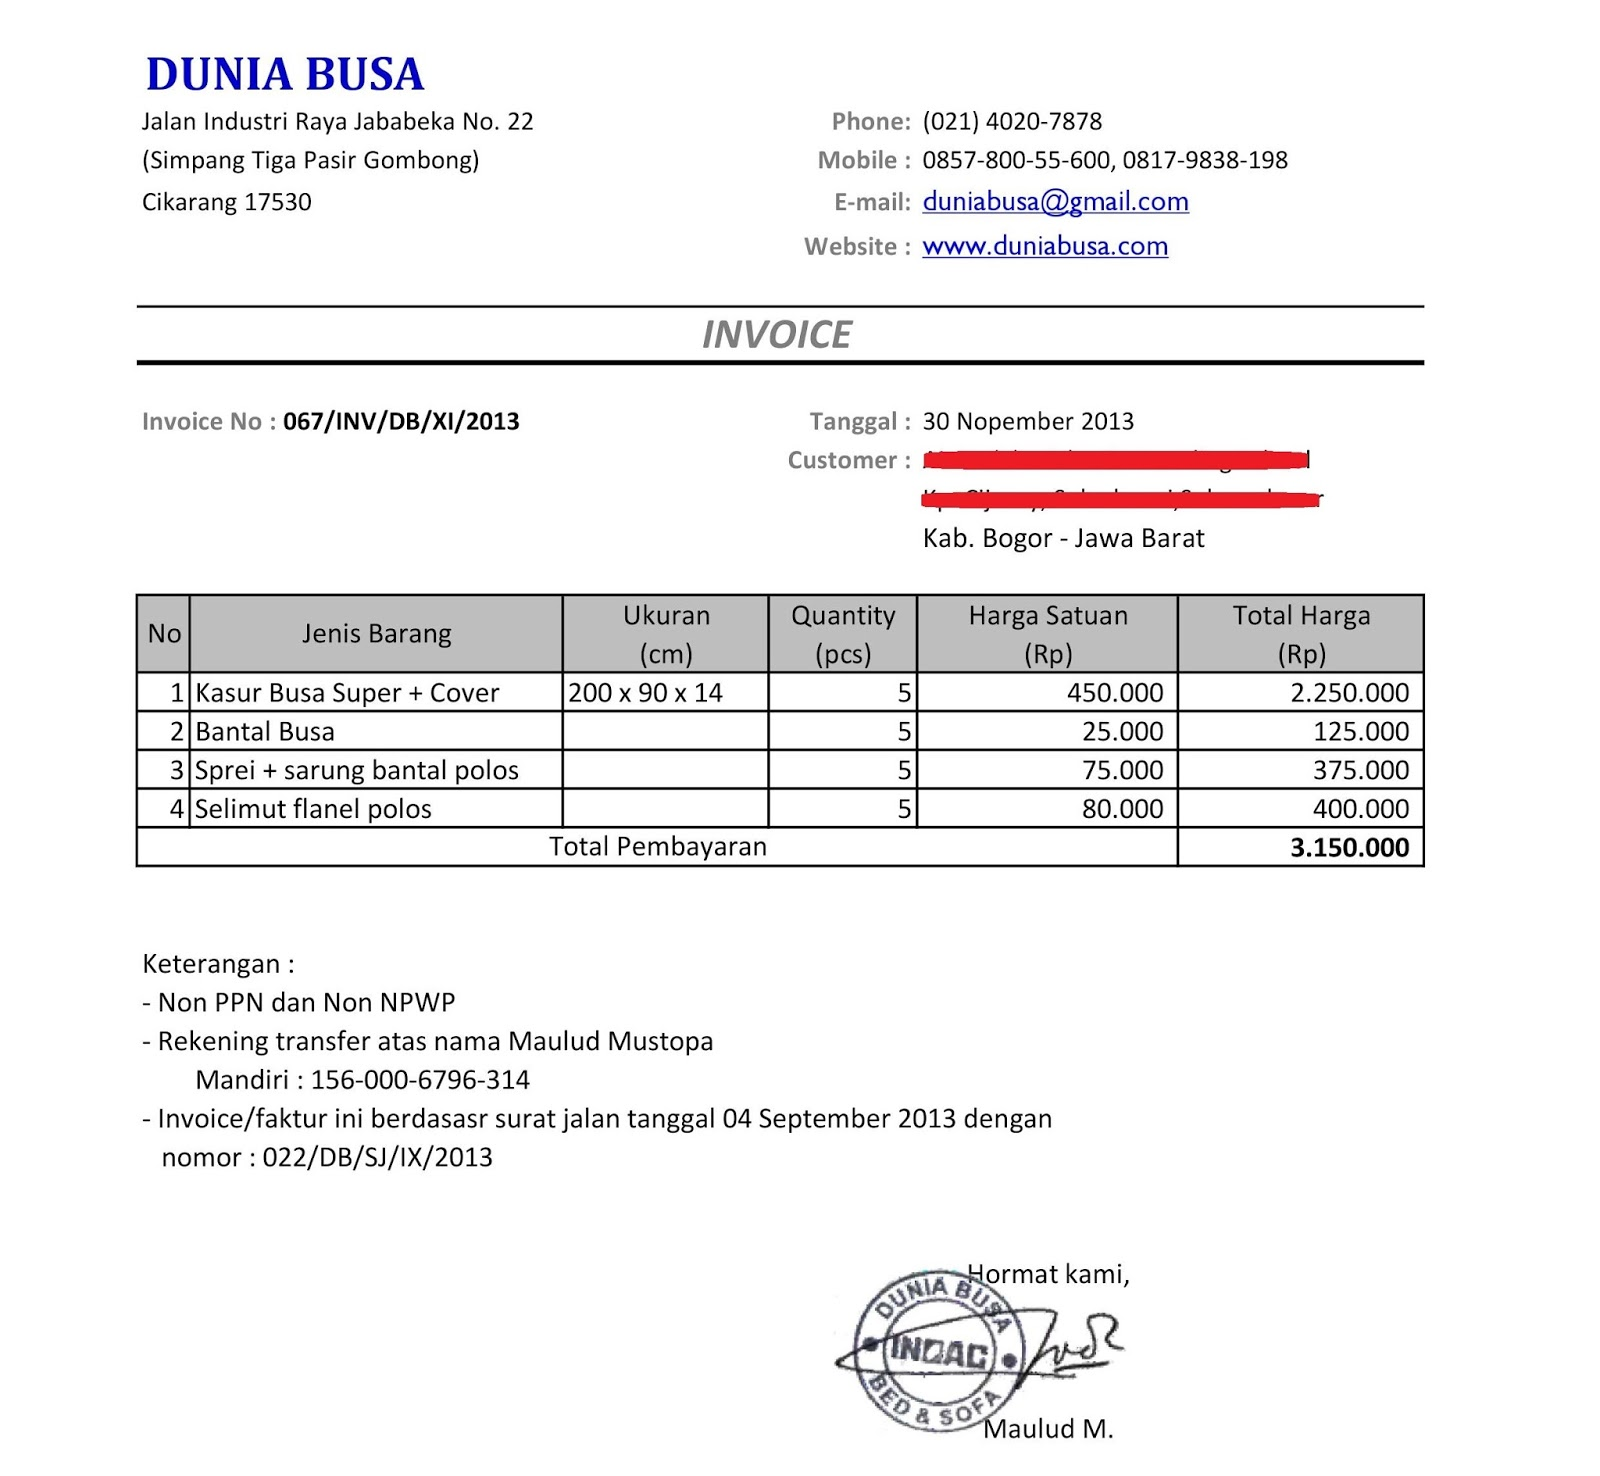 Musclebuildingtipsus  Sweet Free Invoice Online  Create Invoice Online  Invoice Template  With Luxury Contoh Format Invoice Atau Surat Tagihan  Brankas Arsip  Free Invoice Online With Extraordinary Sample Copy Of Proforma Invoice Also Invoice Format In Doc In Addition Designing An Invoice And How To Print Invoices As Well As Sale Invoices Additionally Ms Access Invoice Database From Sklepco With Musclebuildingtipsus  Luxury Free Invoice Online  Create Invoice Online  Invoice Template  With Extraordinary Contoh Format Invoice Atau Surat Tagihan  Brankas Arsip  Free Invoice Online And Sweet Sample Copy Of Proforma Invoice Also Invoice Format In Doc In Addition Designing An Invoice From Sklepco